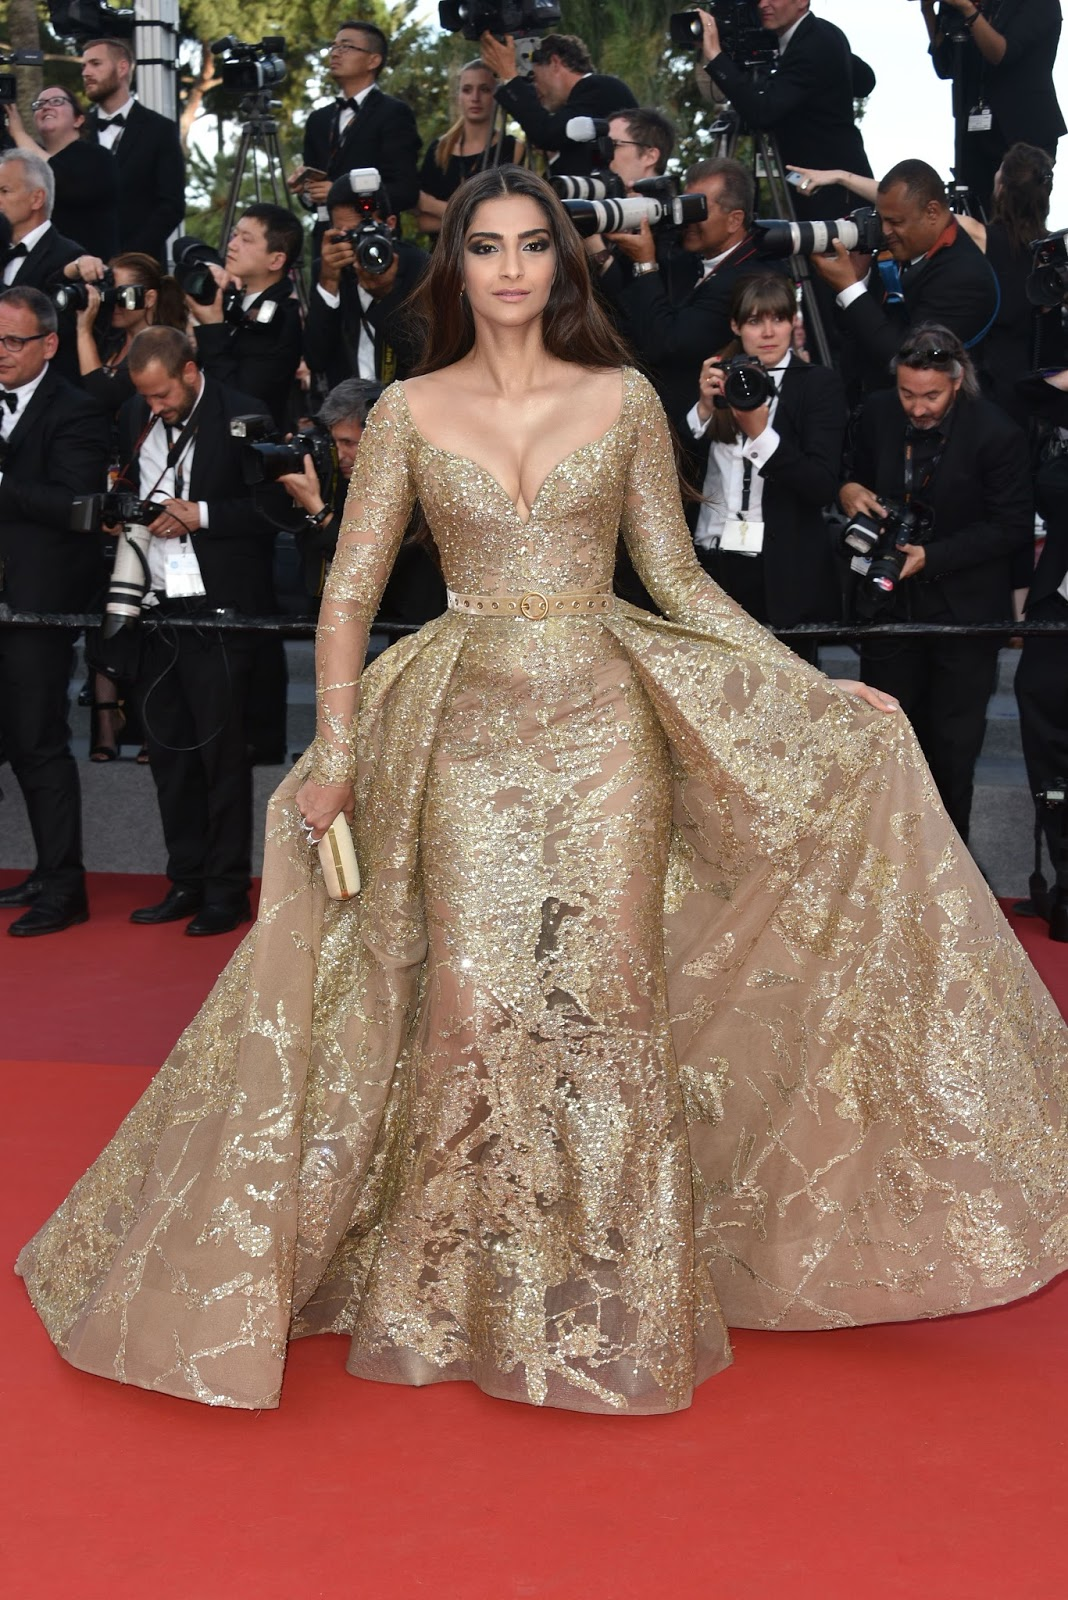 Sonam Kapoor in Golden Choli Style dress at a Movie Premiere at Cannes Film Festival 2017